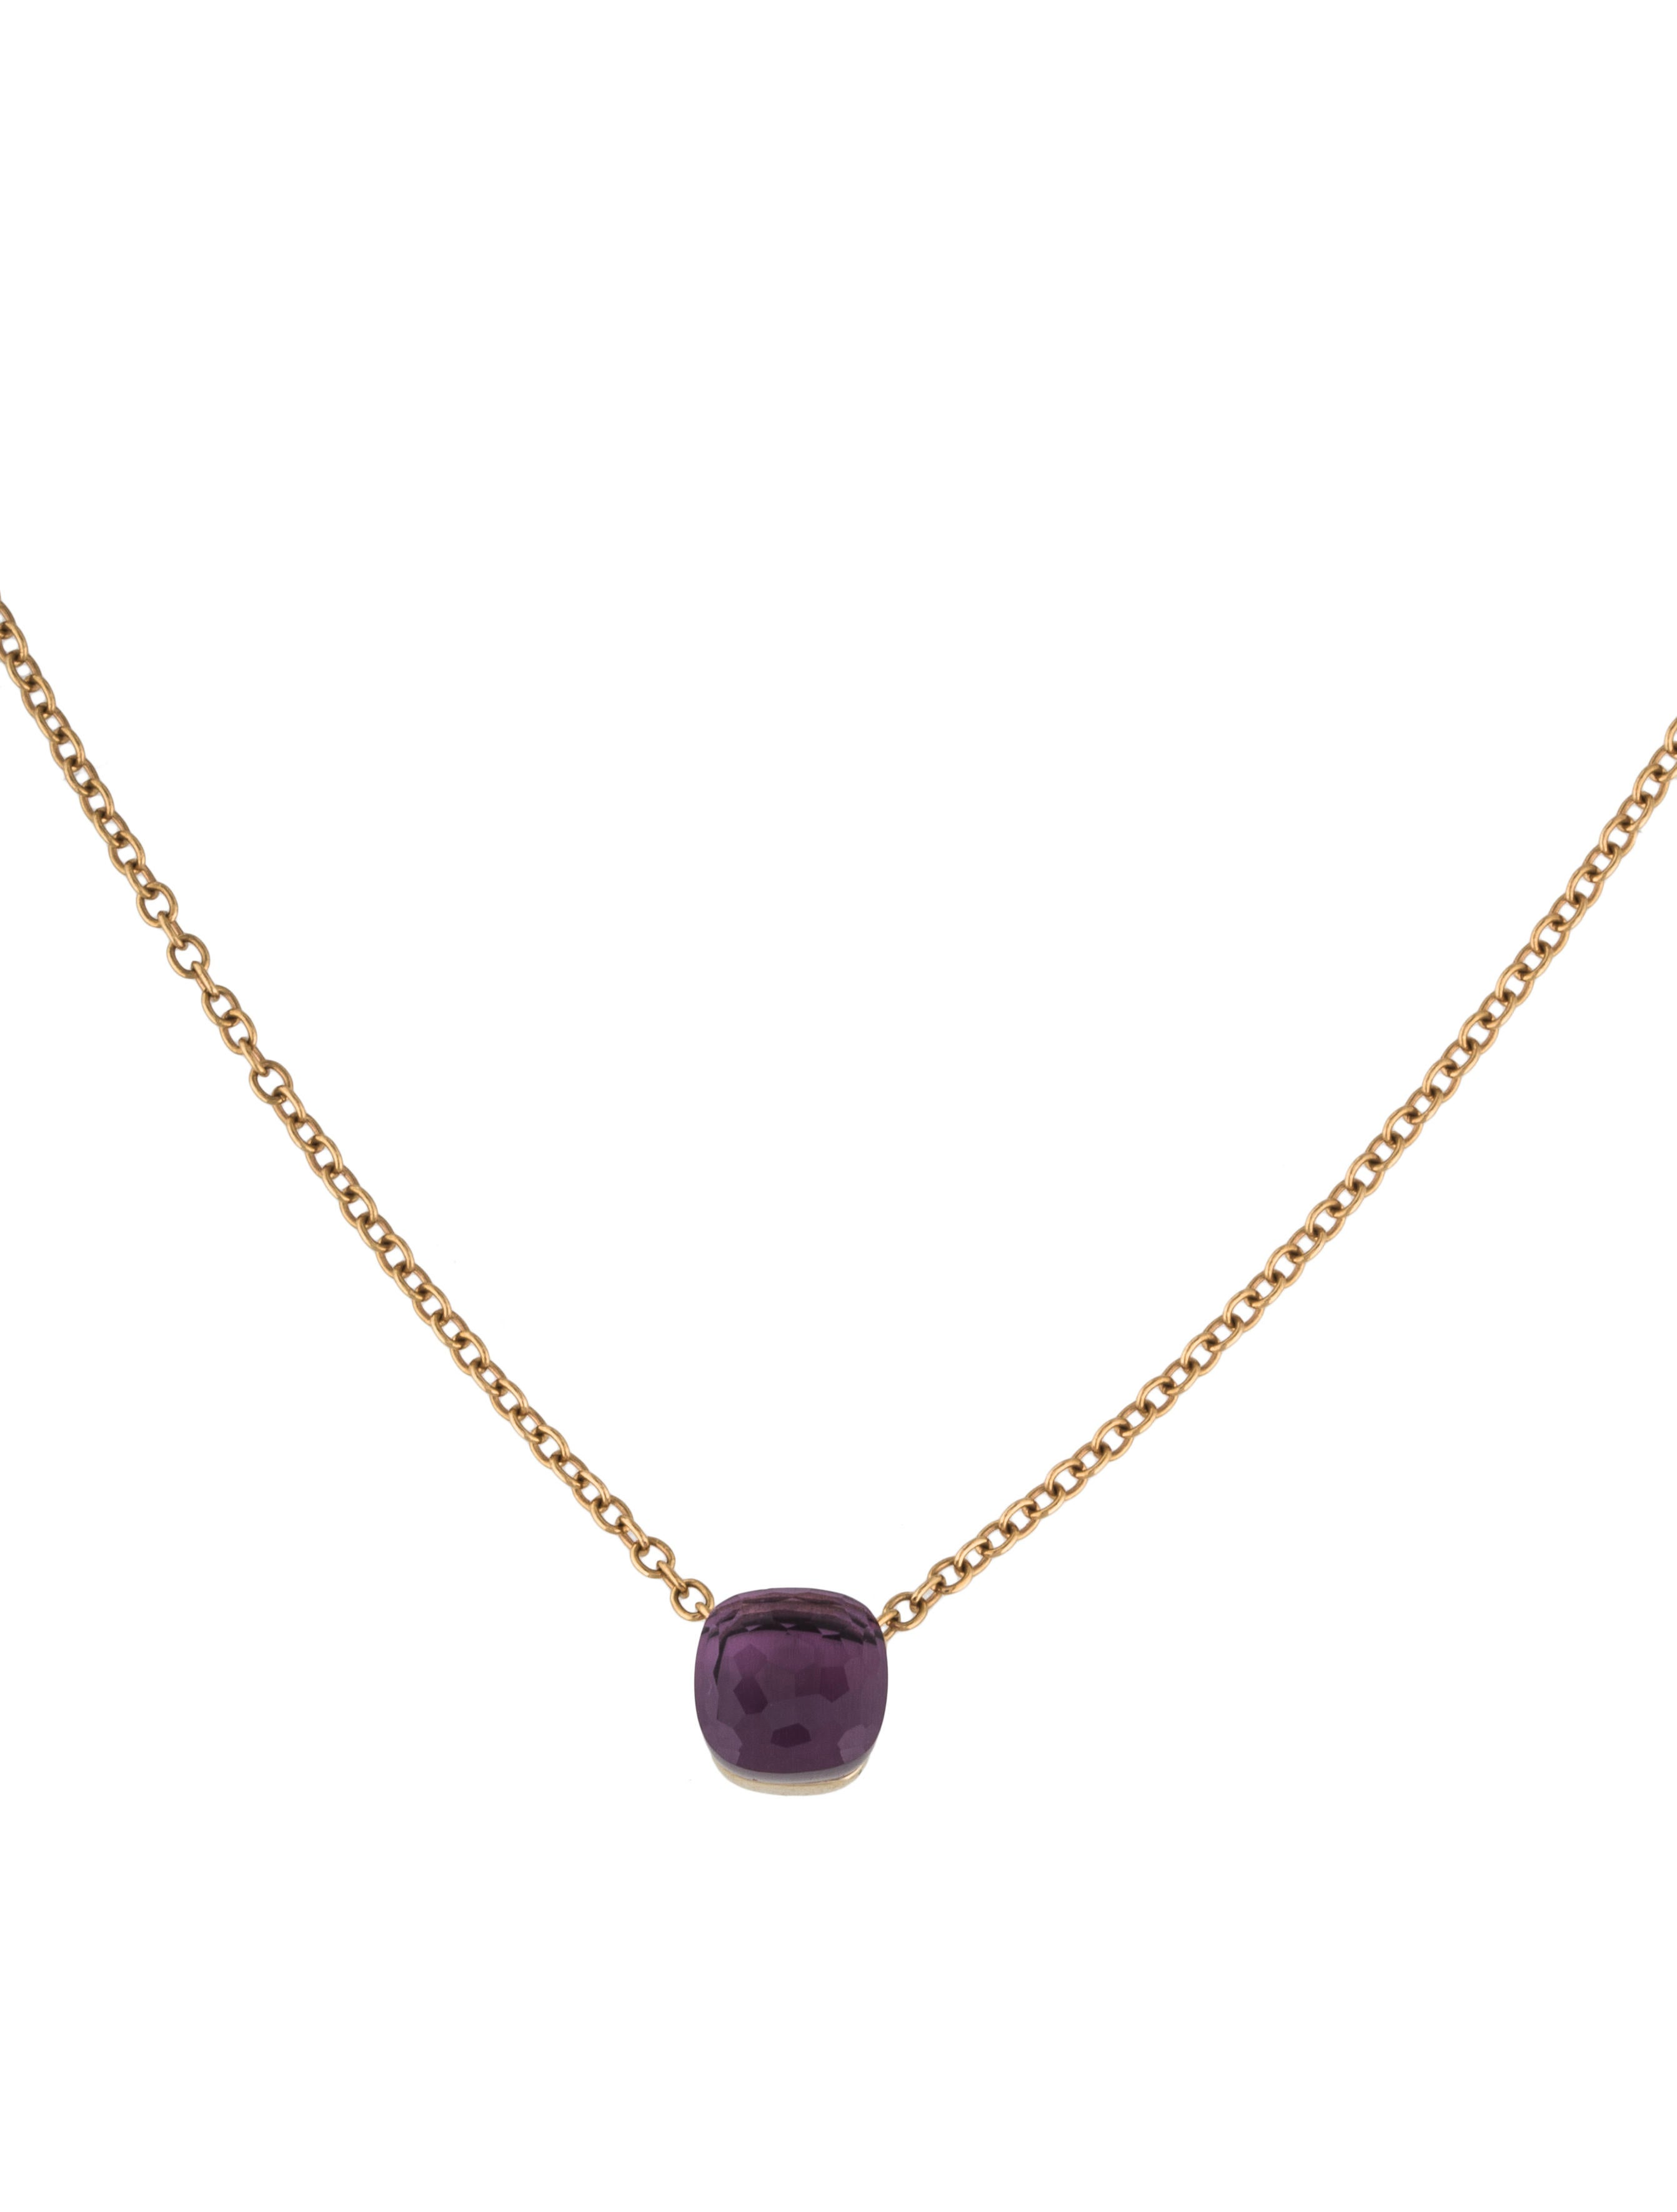 POMELLATO 18kt rose & white gold Nudo amethyst pendant necklace - Unavailable DInW5f